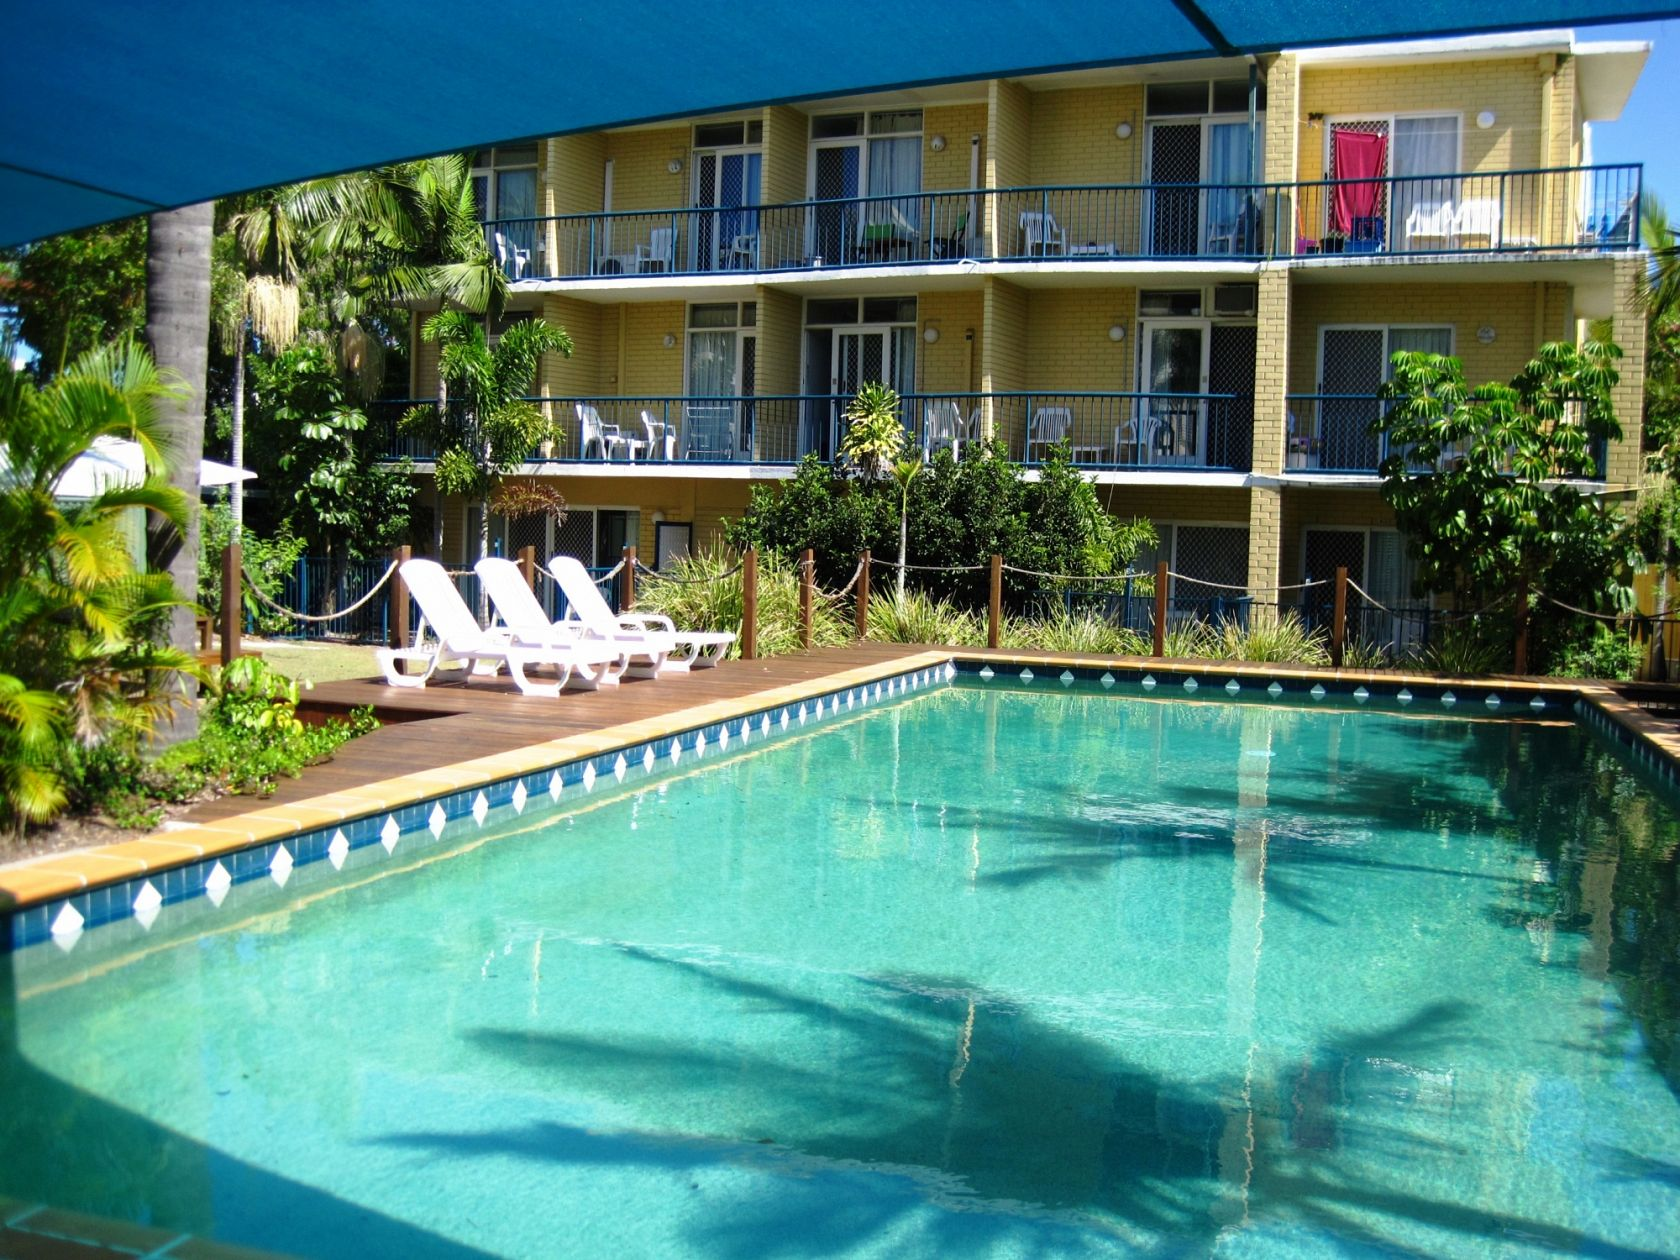 Gold Coast Motel with Freehold Title Manager's Unit